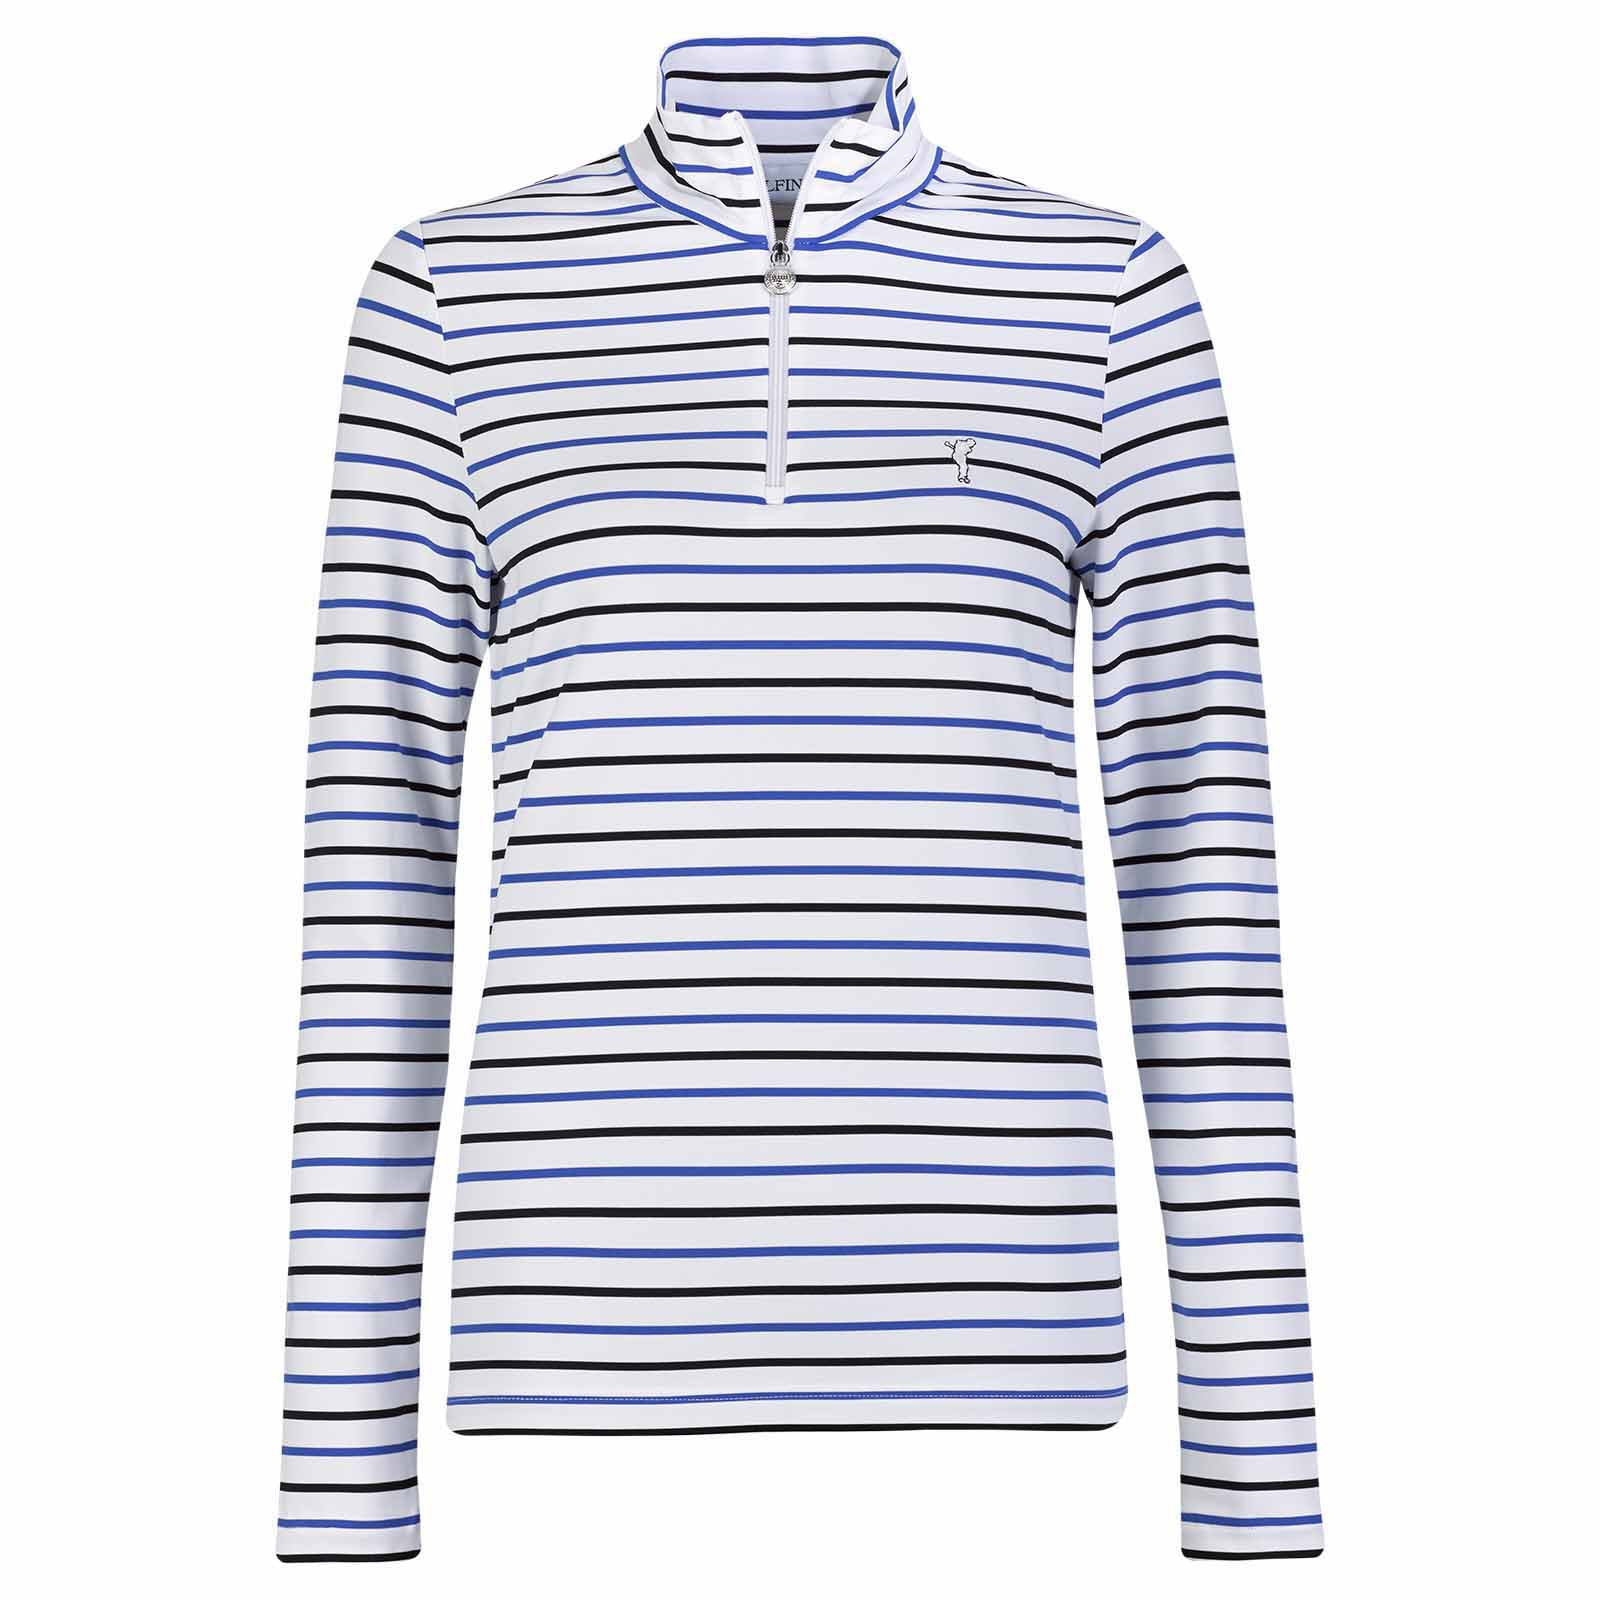 Striped long-sleeve ladies' Dry Comfort base layer